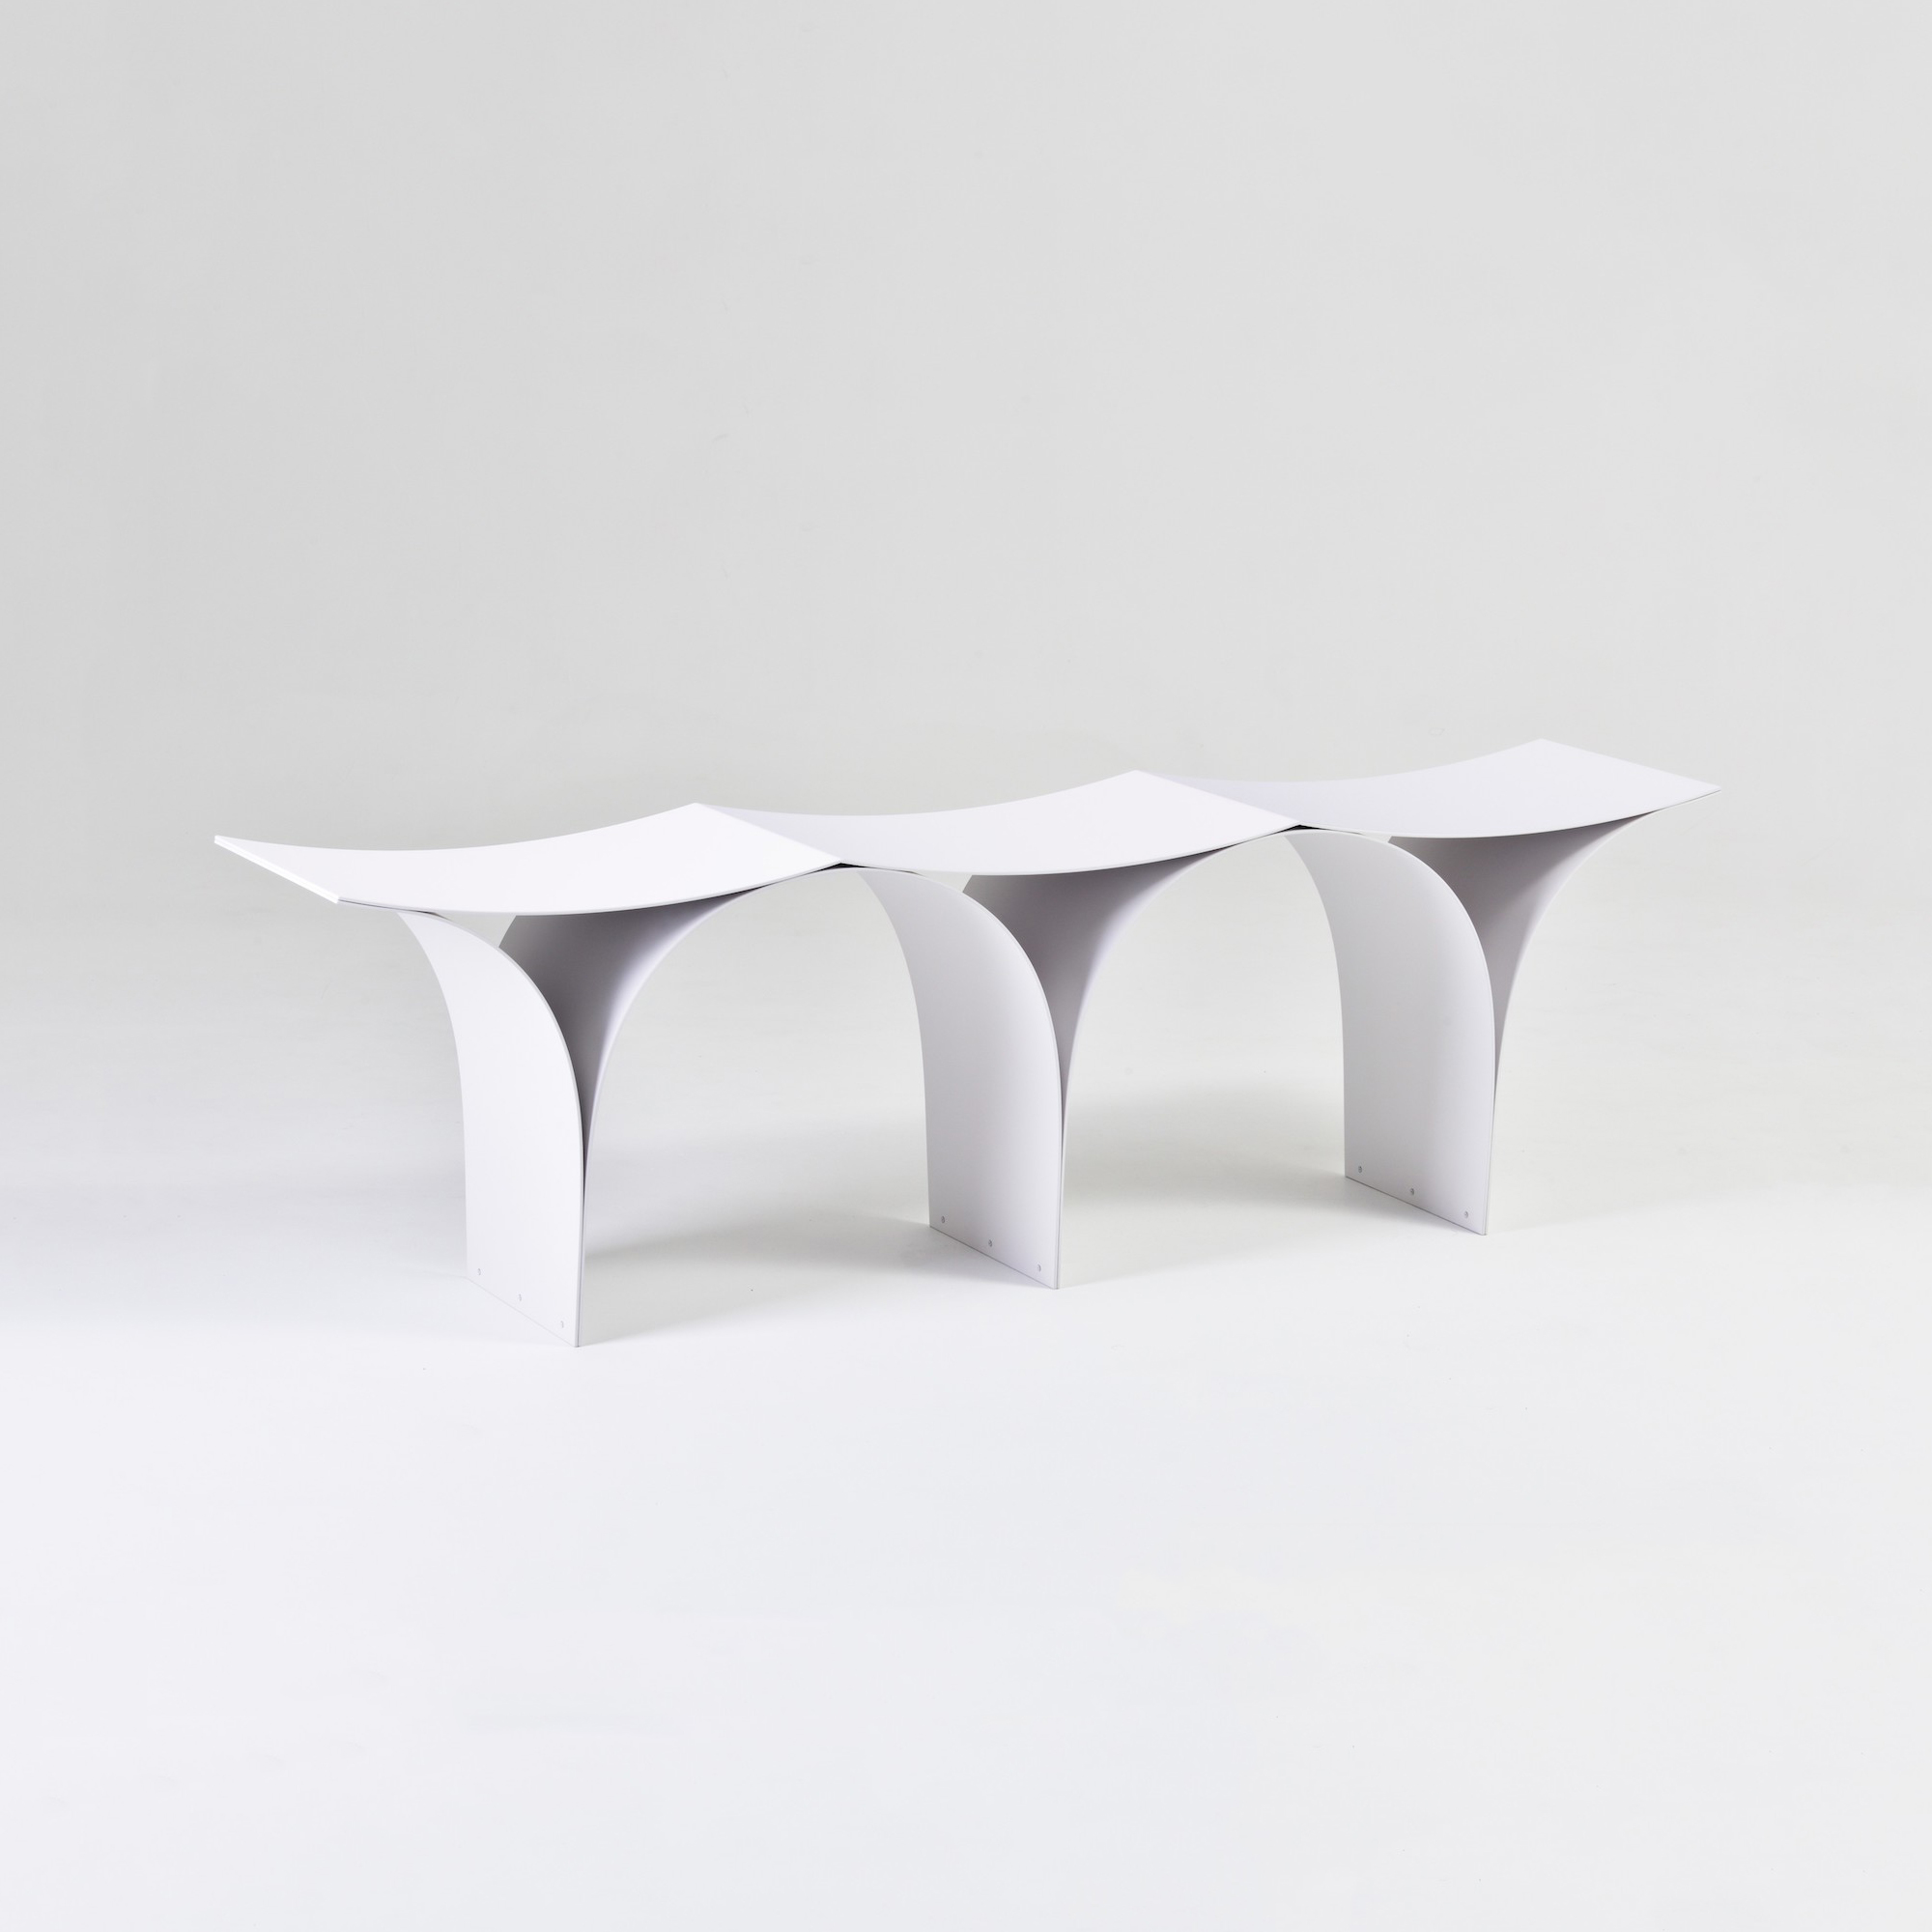 Minimalist Bench 'Arch' by Shinya Oguchi